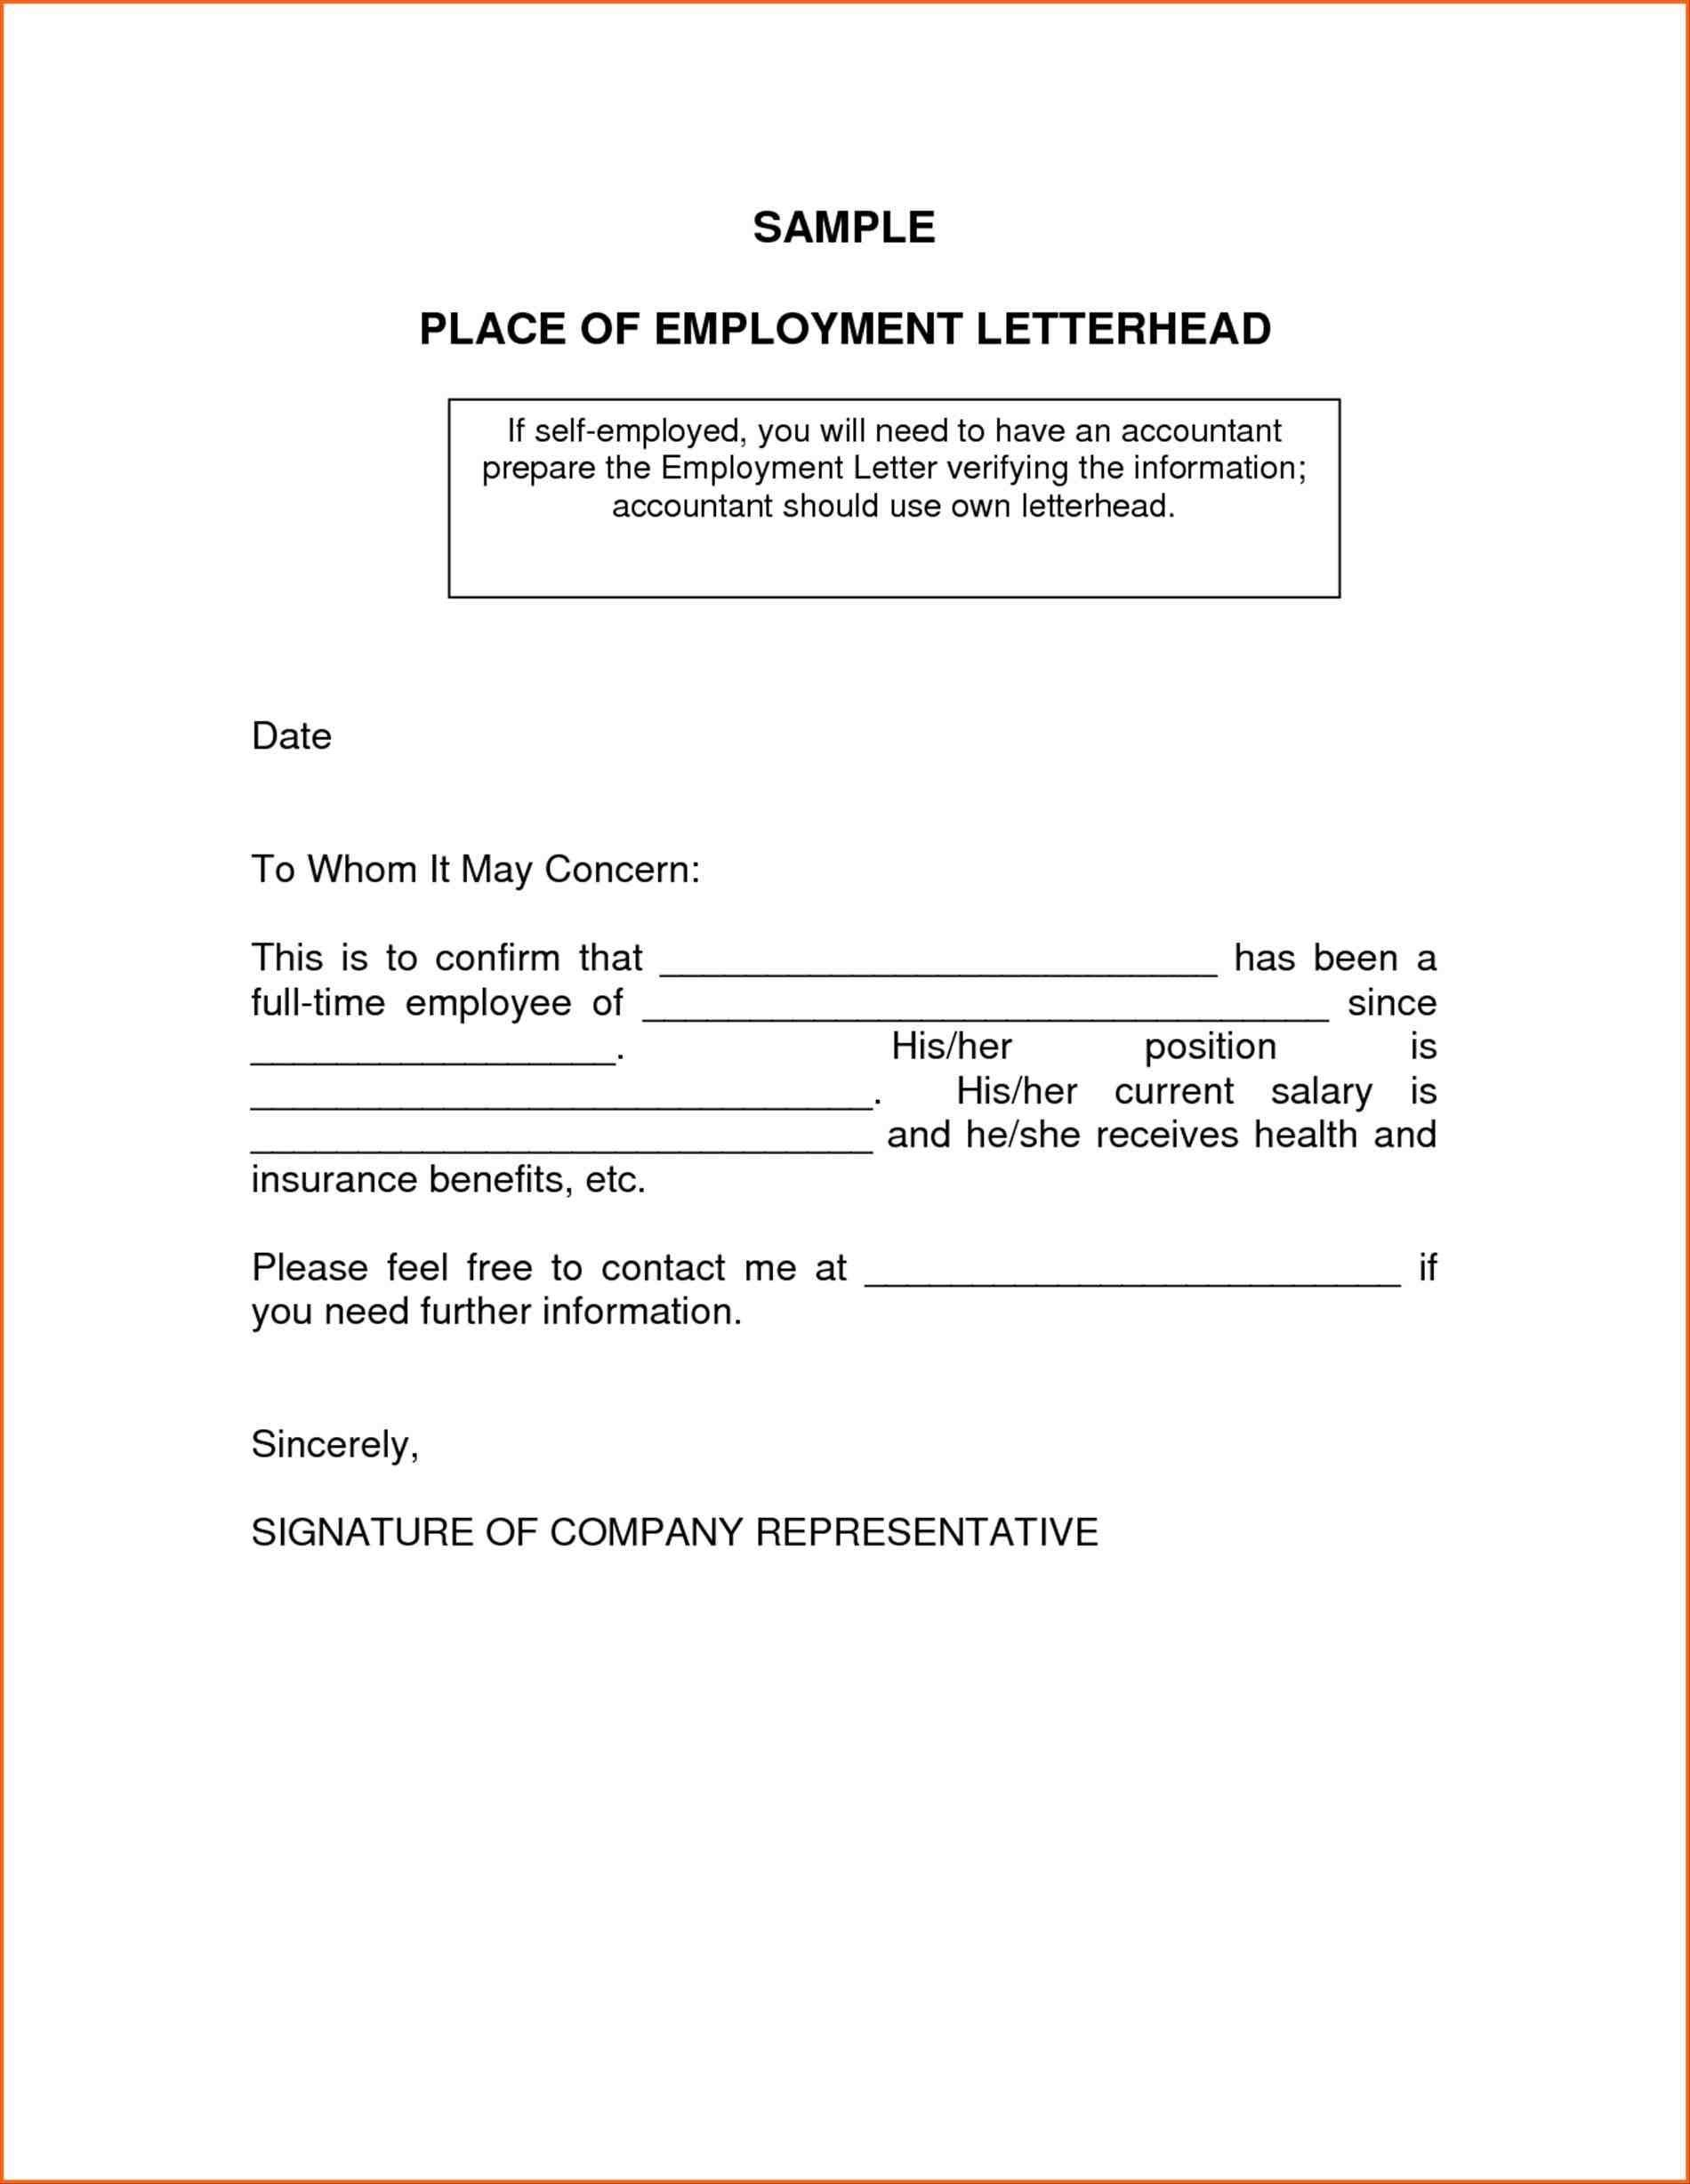 Cpa Letter for Self Employed Template - How to Write A Self Employment Letter Sample New Proof Accountants